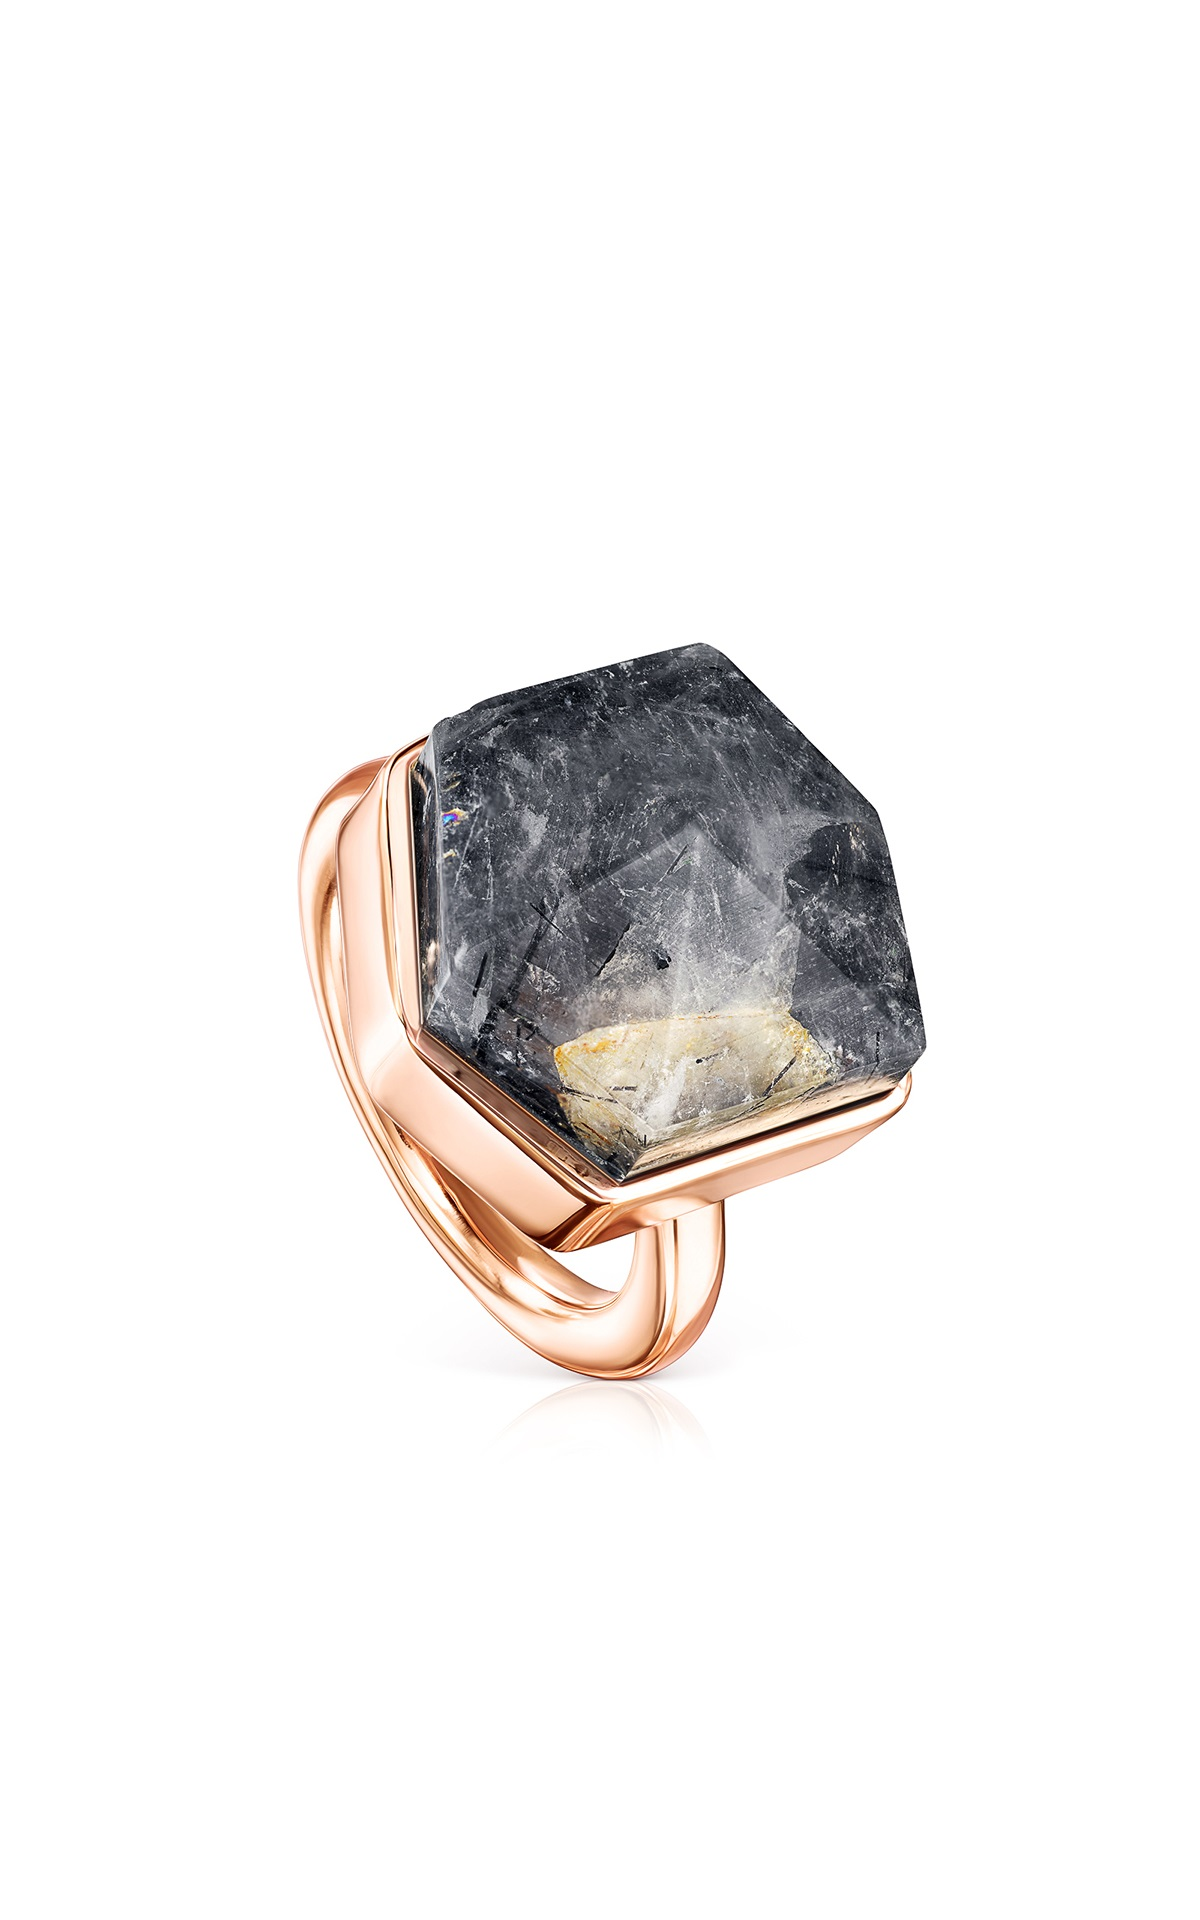 Ring with a black stone Tous